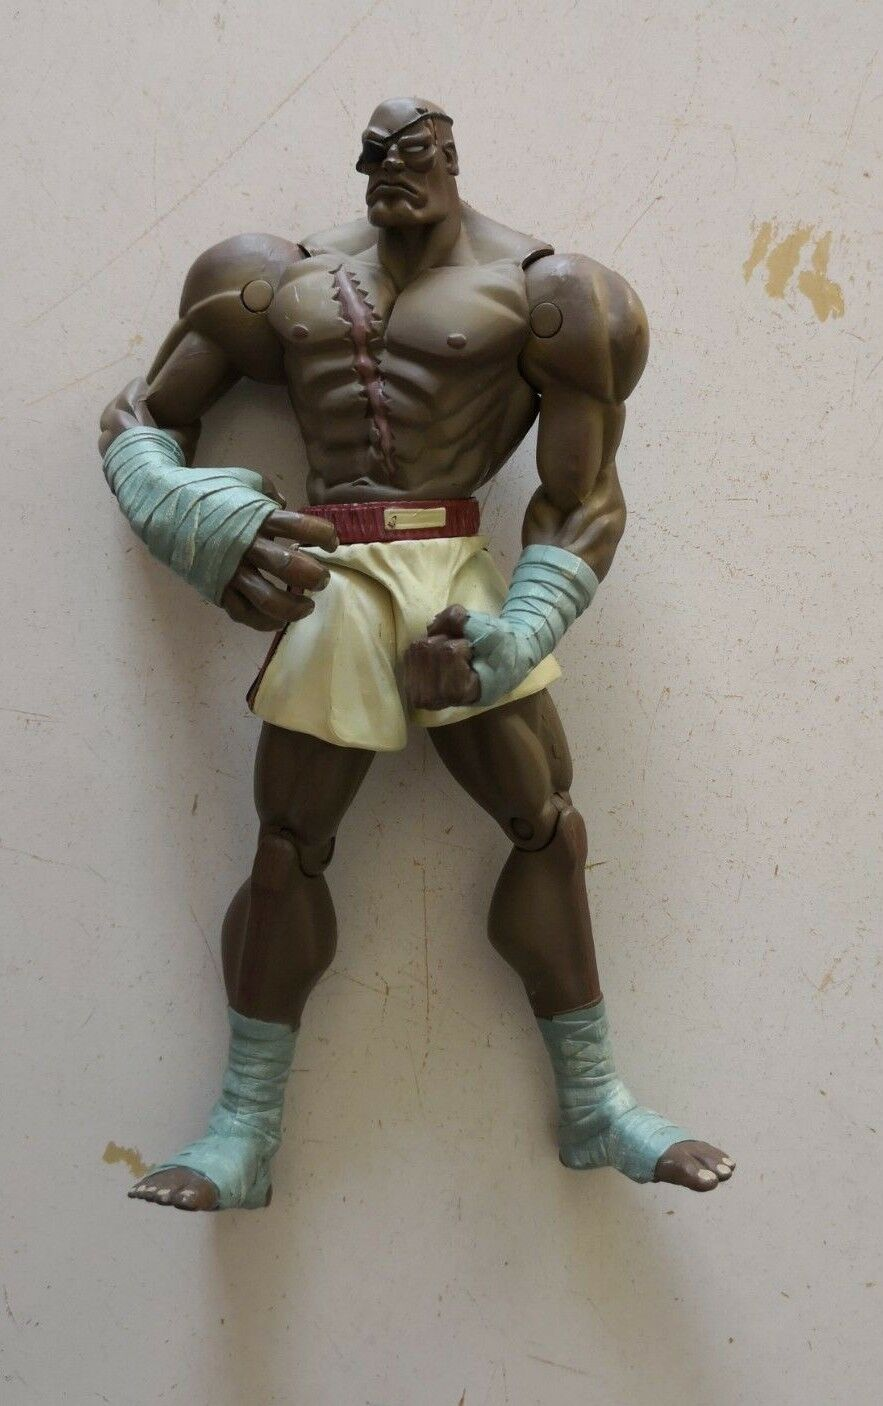 Capcom's STREET FIGHTER II Round 2, Player 2 SAGAT action figure by ReSaurus